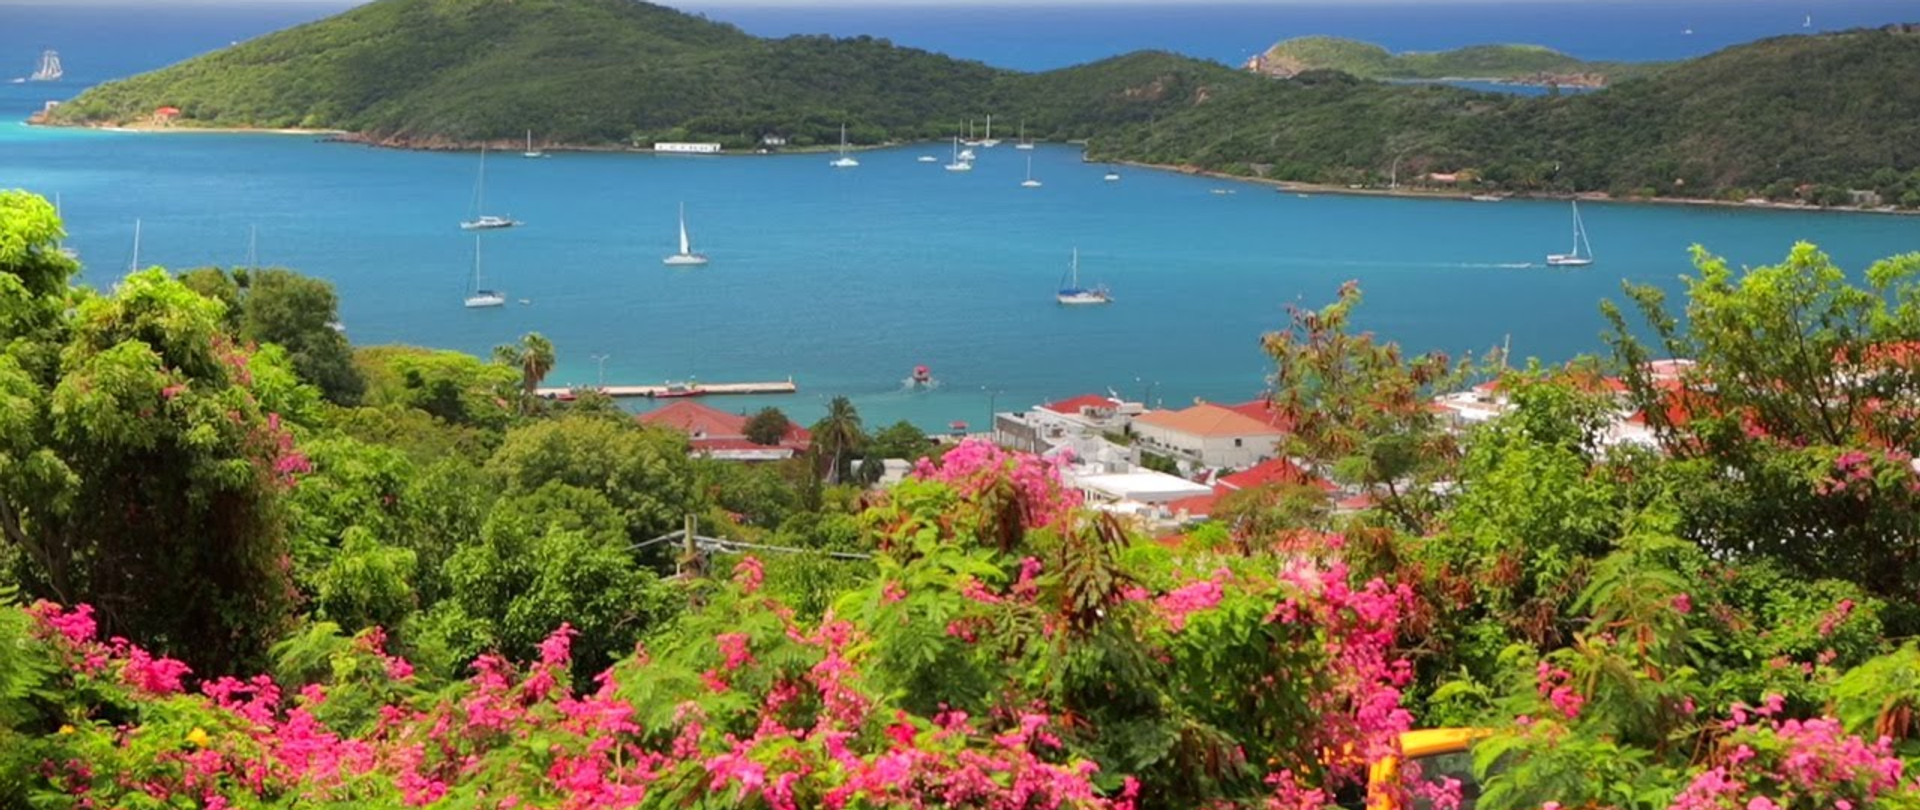 St Thomas Yacht Charters | Phoenix Island Charters | About St Thomas Video